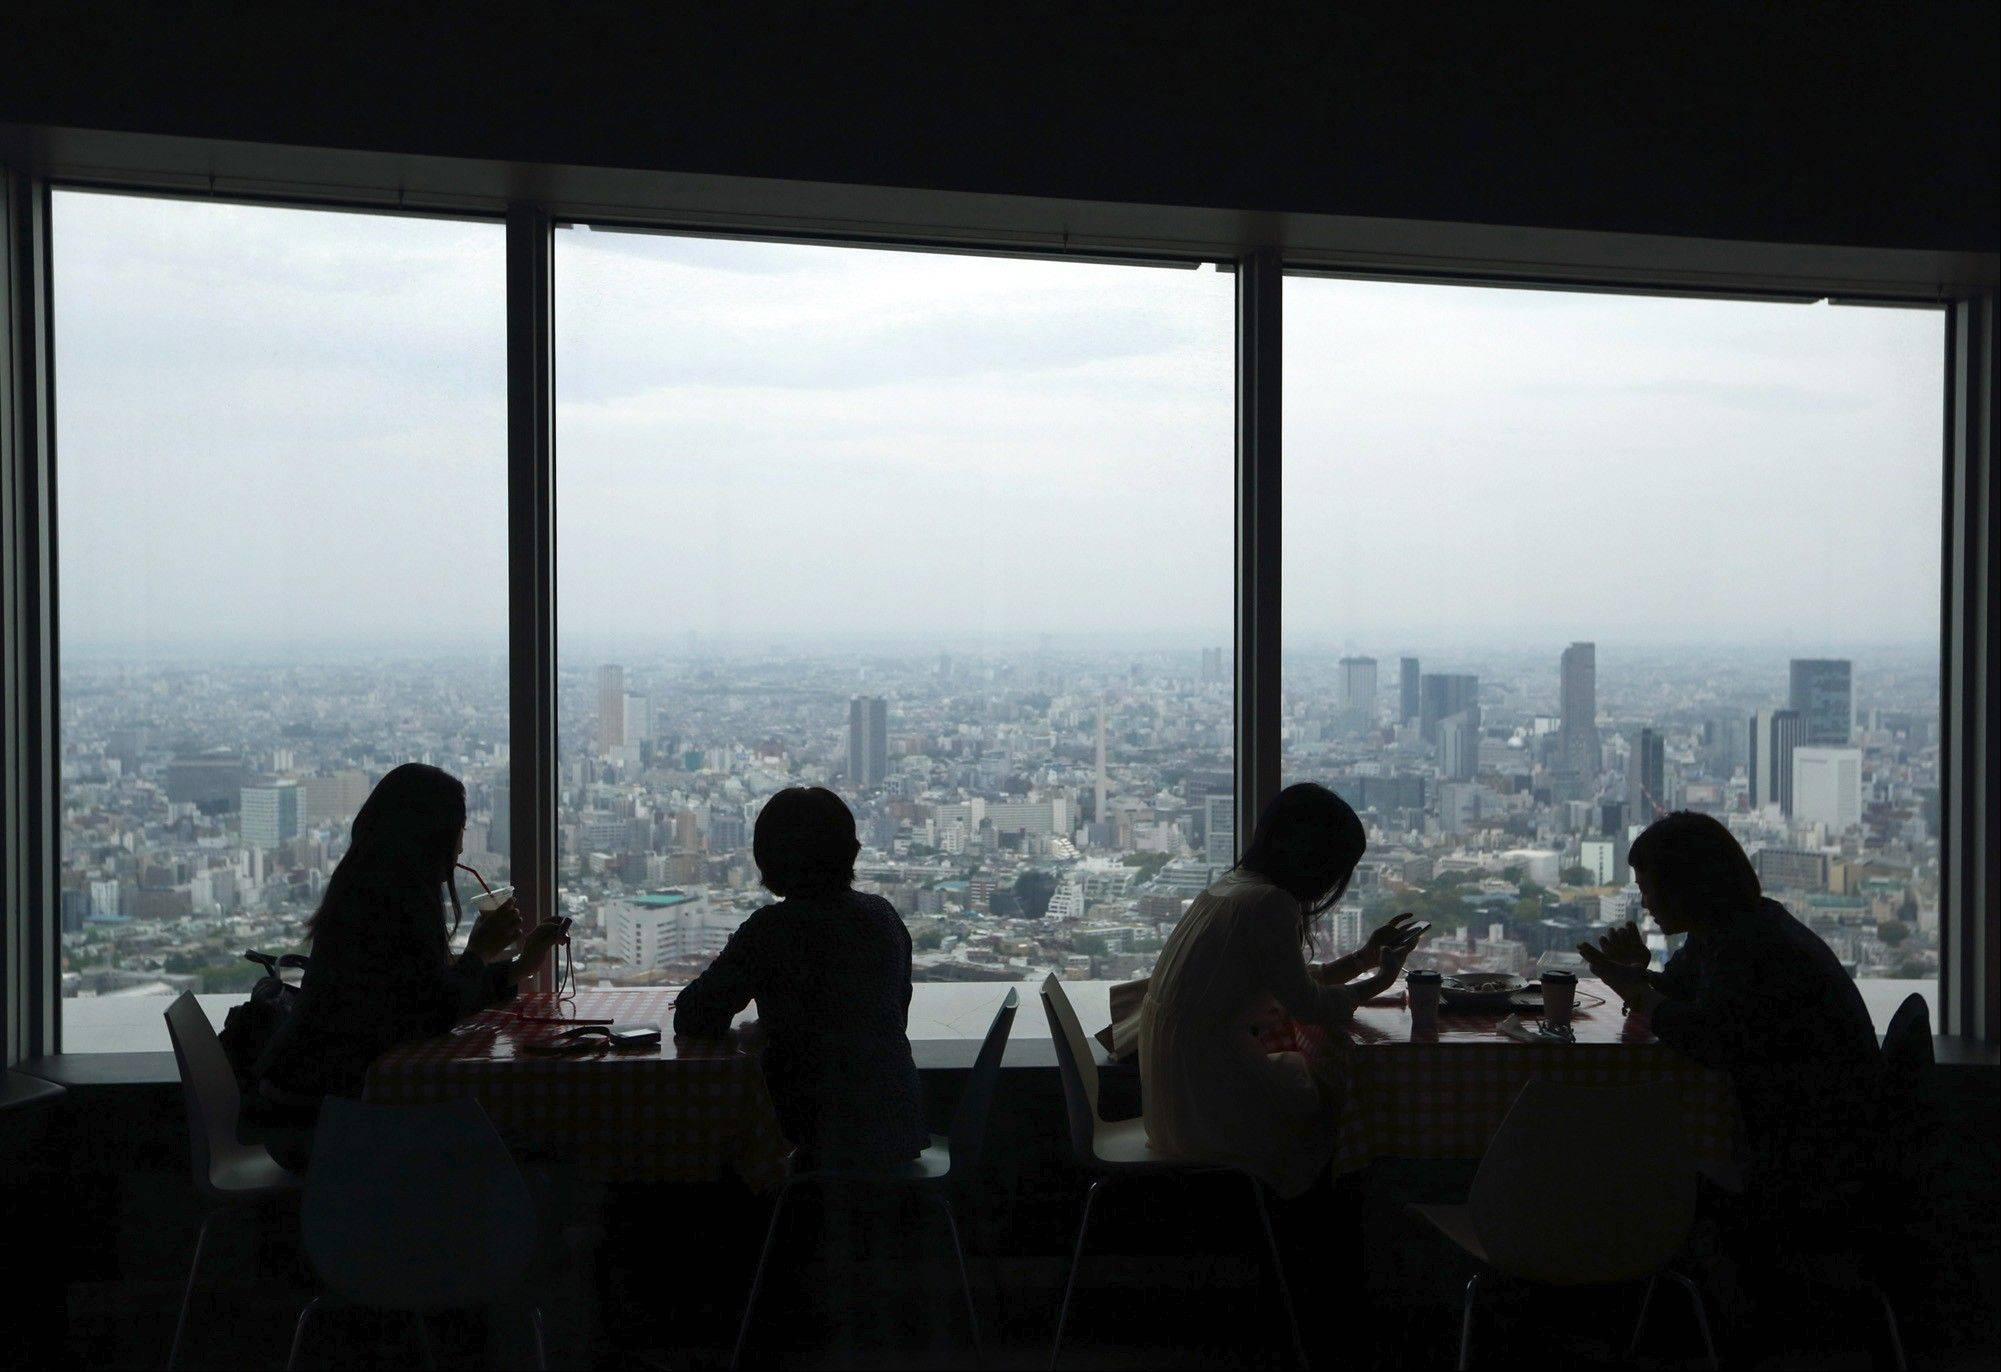 Lunch diners in the Roppongi Hills Mori Tower in Tokyo, a spot once favored by bankers but now populated by technology workers.